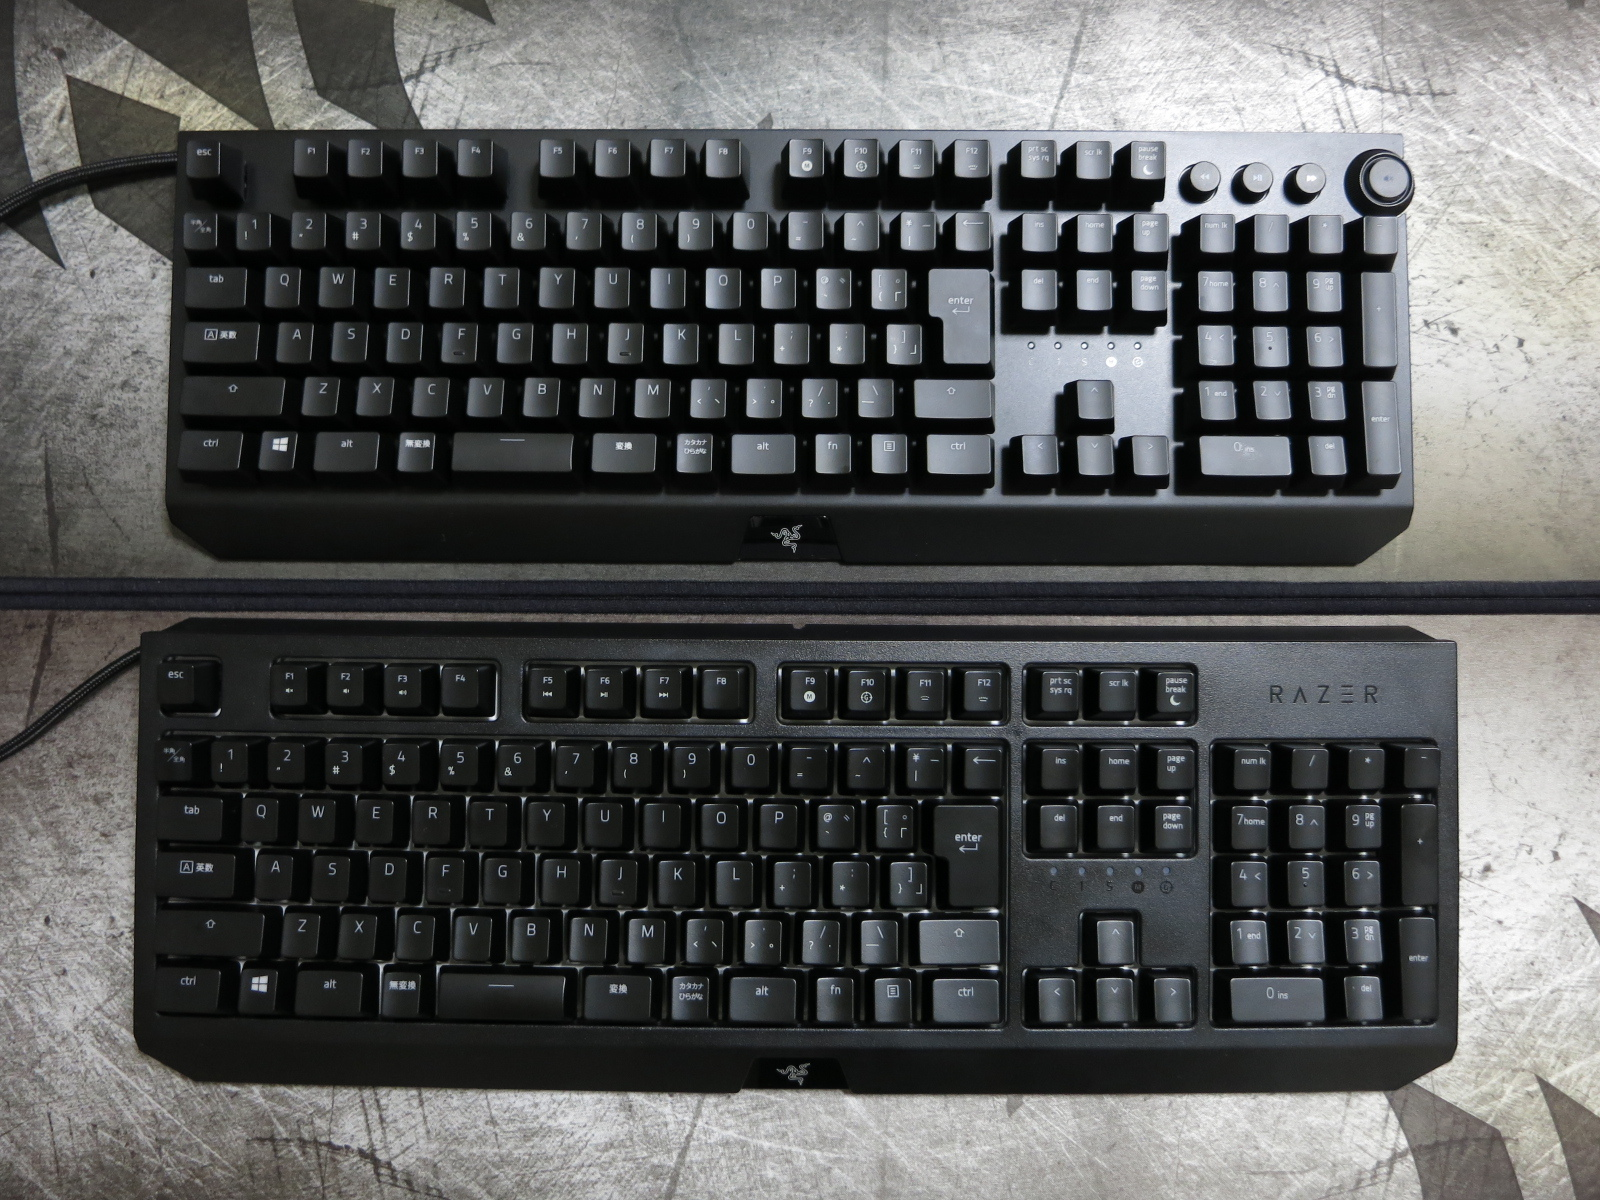 Razer_BlackWidow_2019vsElite_02.jpg